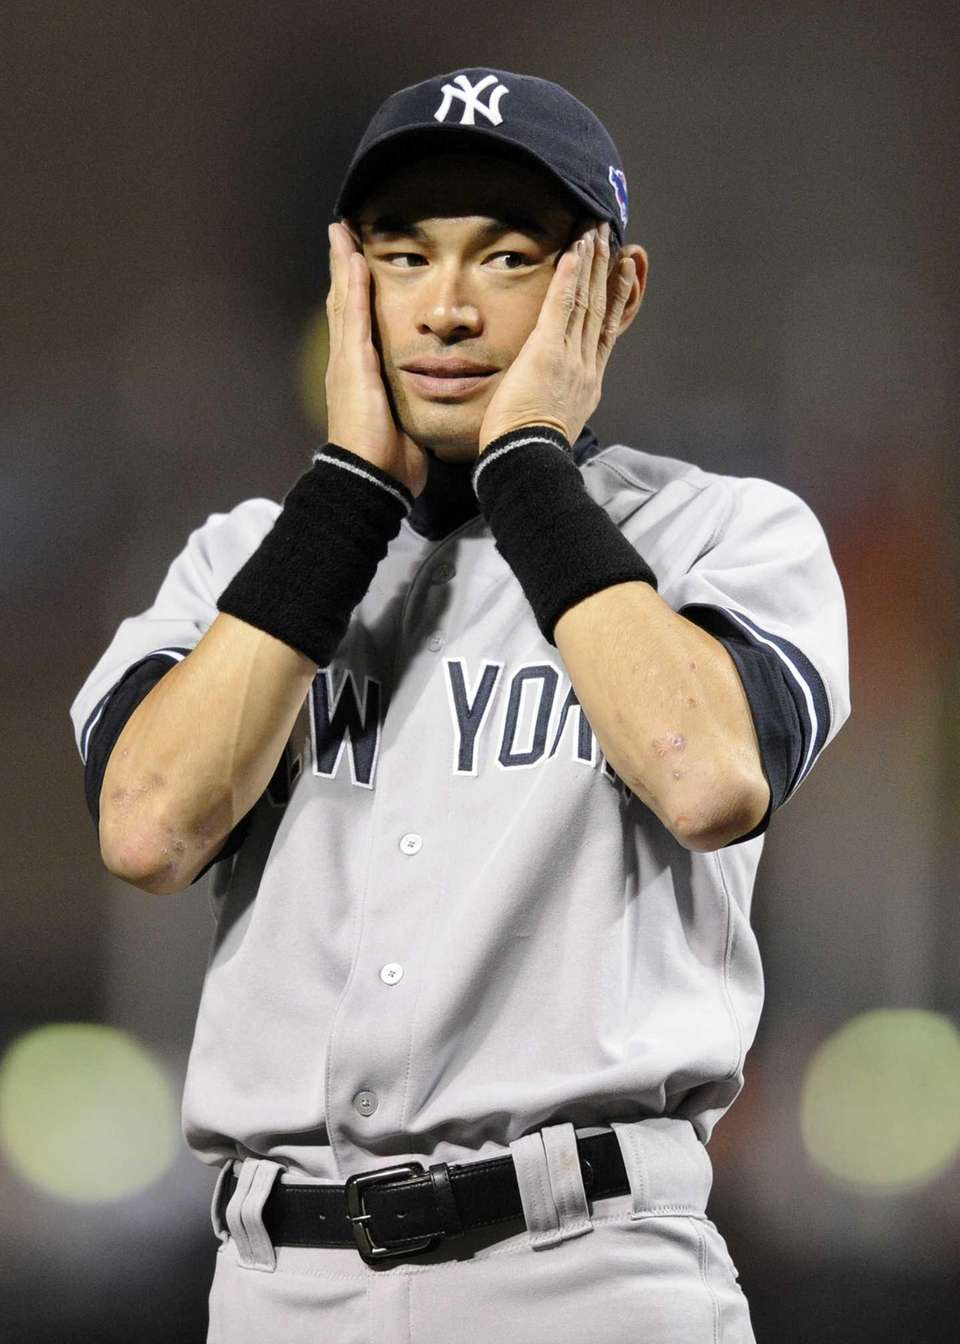 New York Yankees left fielder Ichiro Suzuki reacts